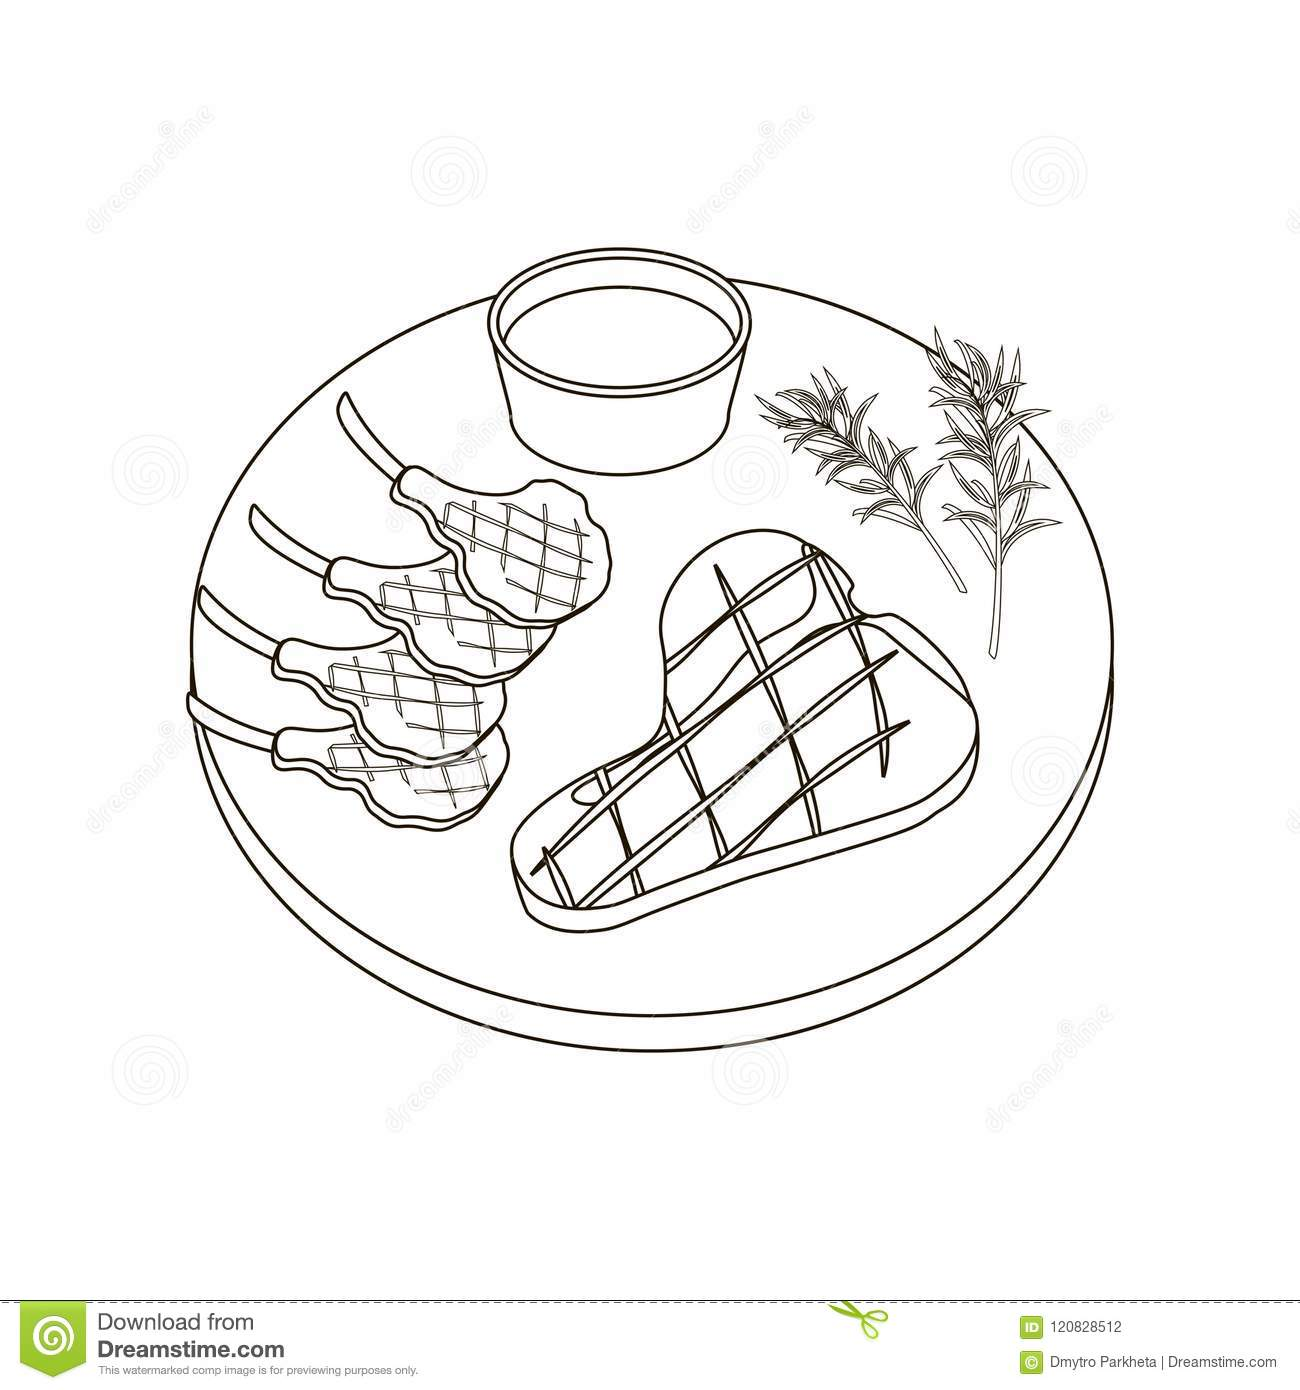 Steak Meat Coloring Pages Stock Vector  Illustration Of Cartoon